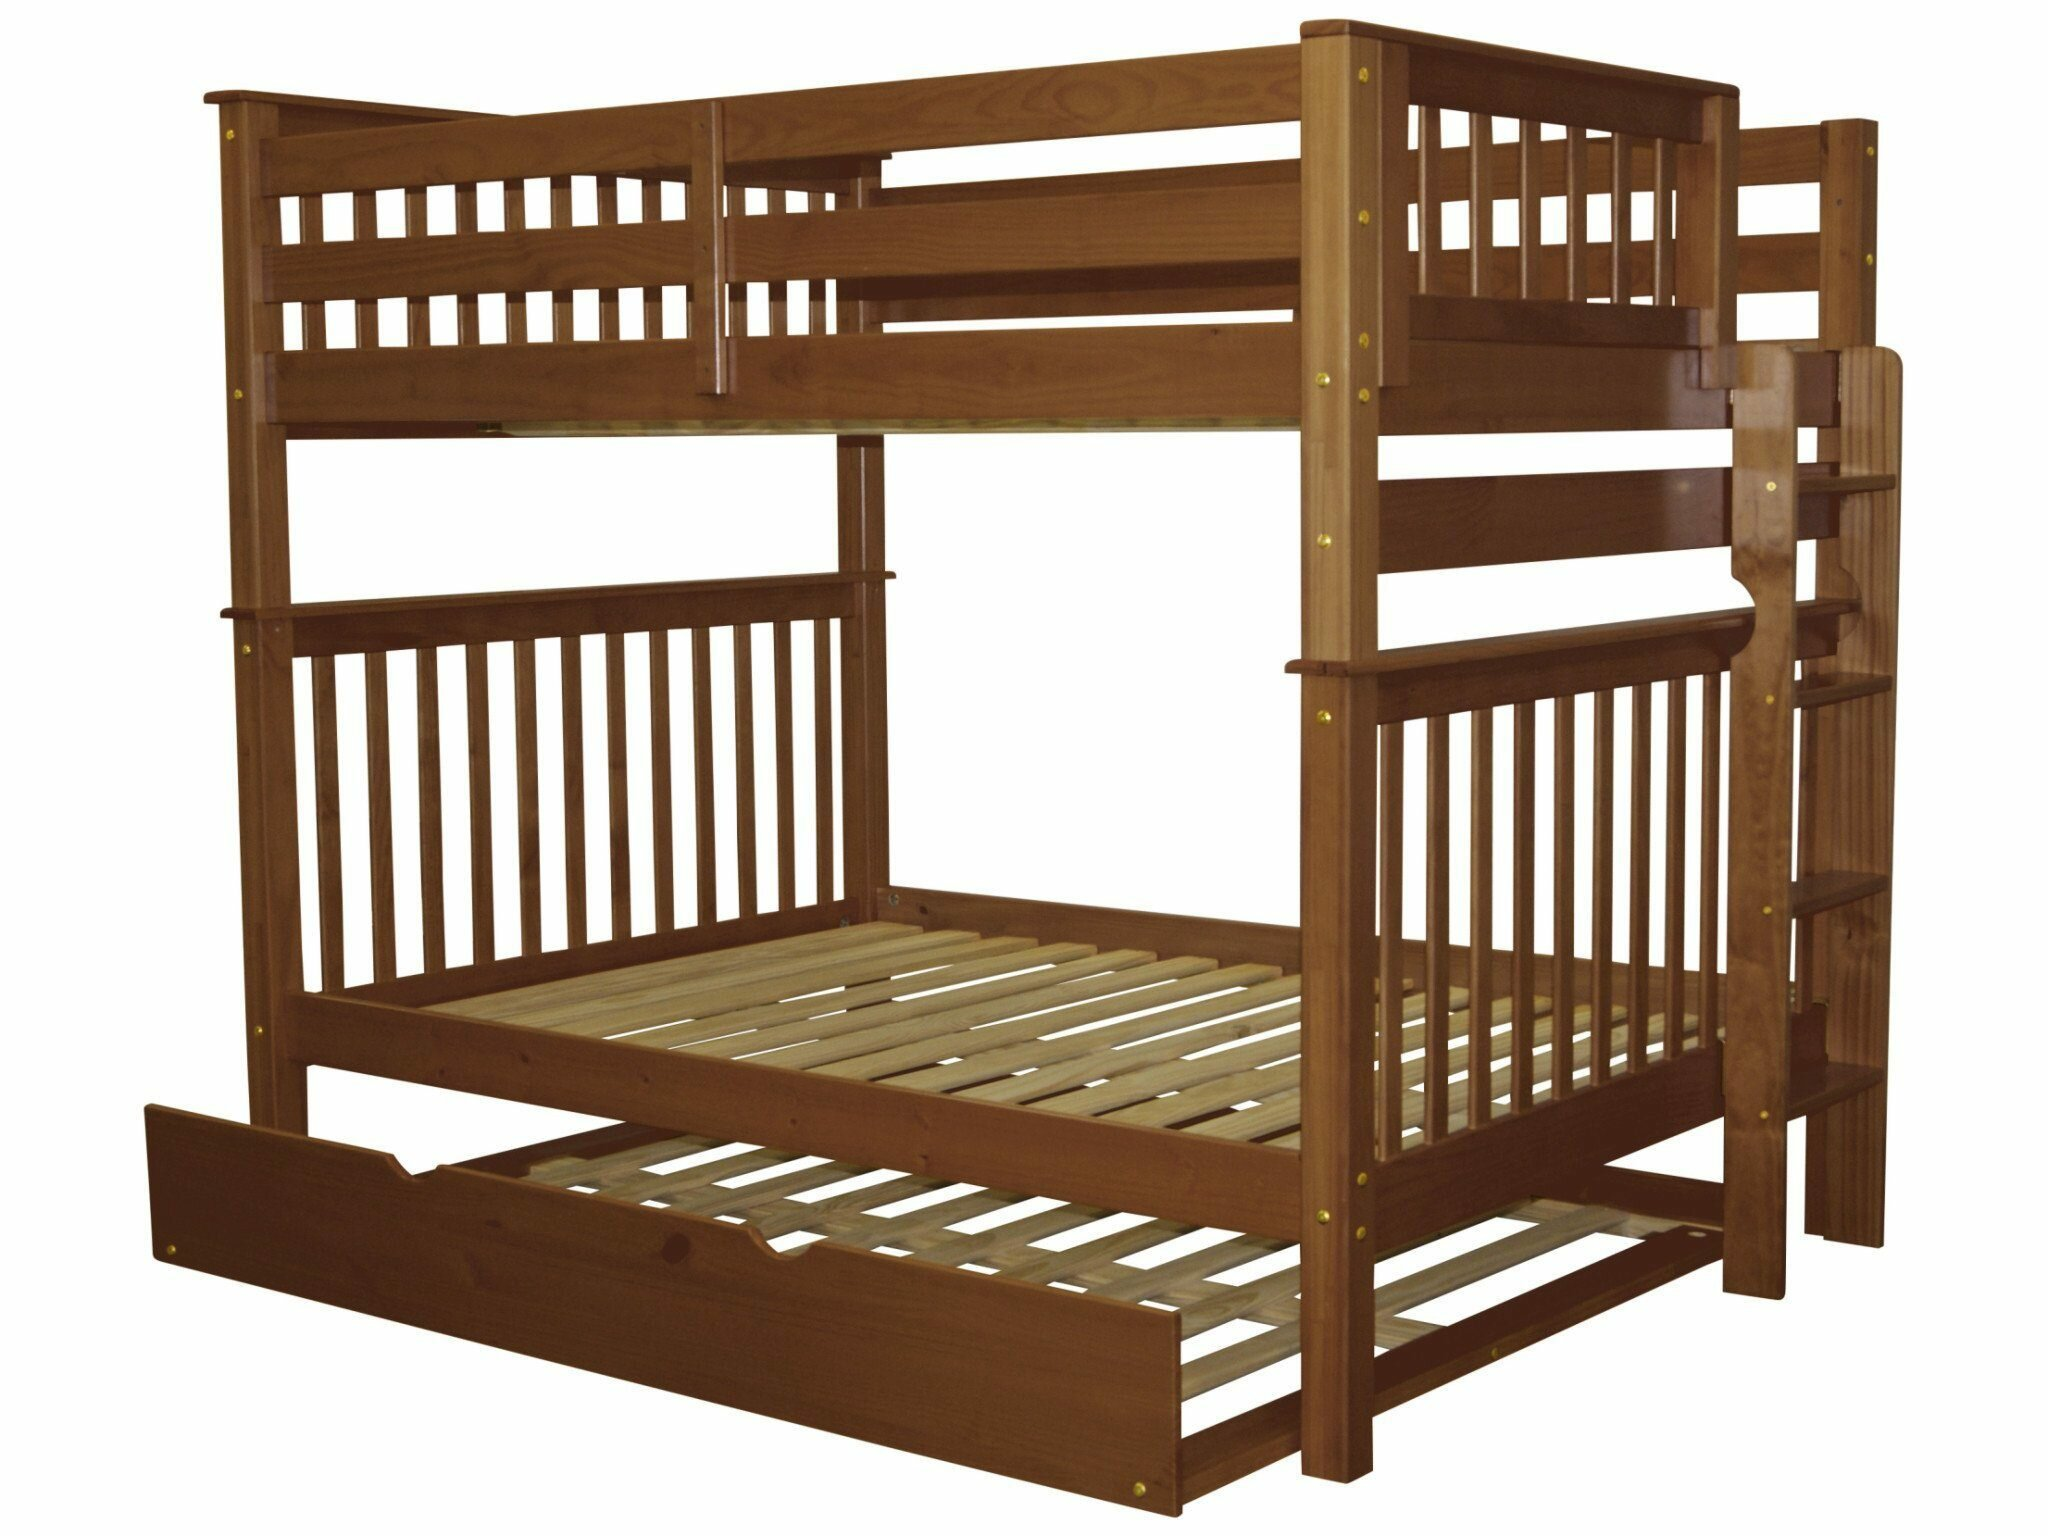 Picture of: Harriet Bee Treva Full Over Full Bunk Bed With Trundle Reviews Wayfair